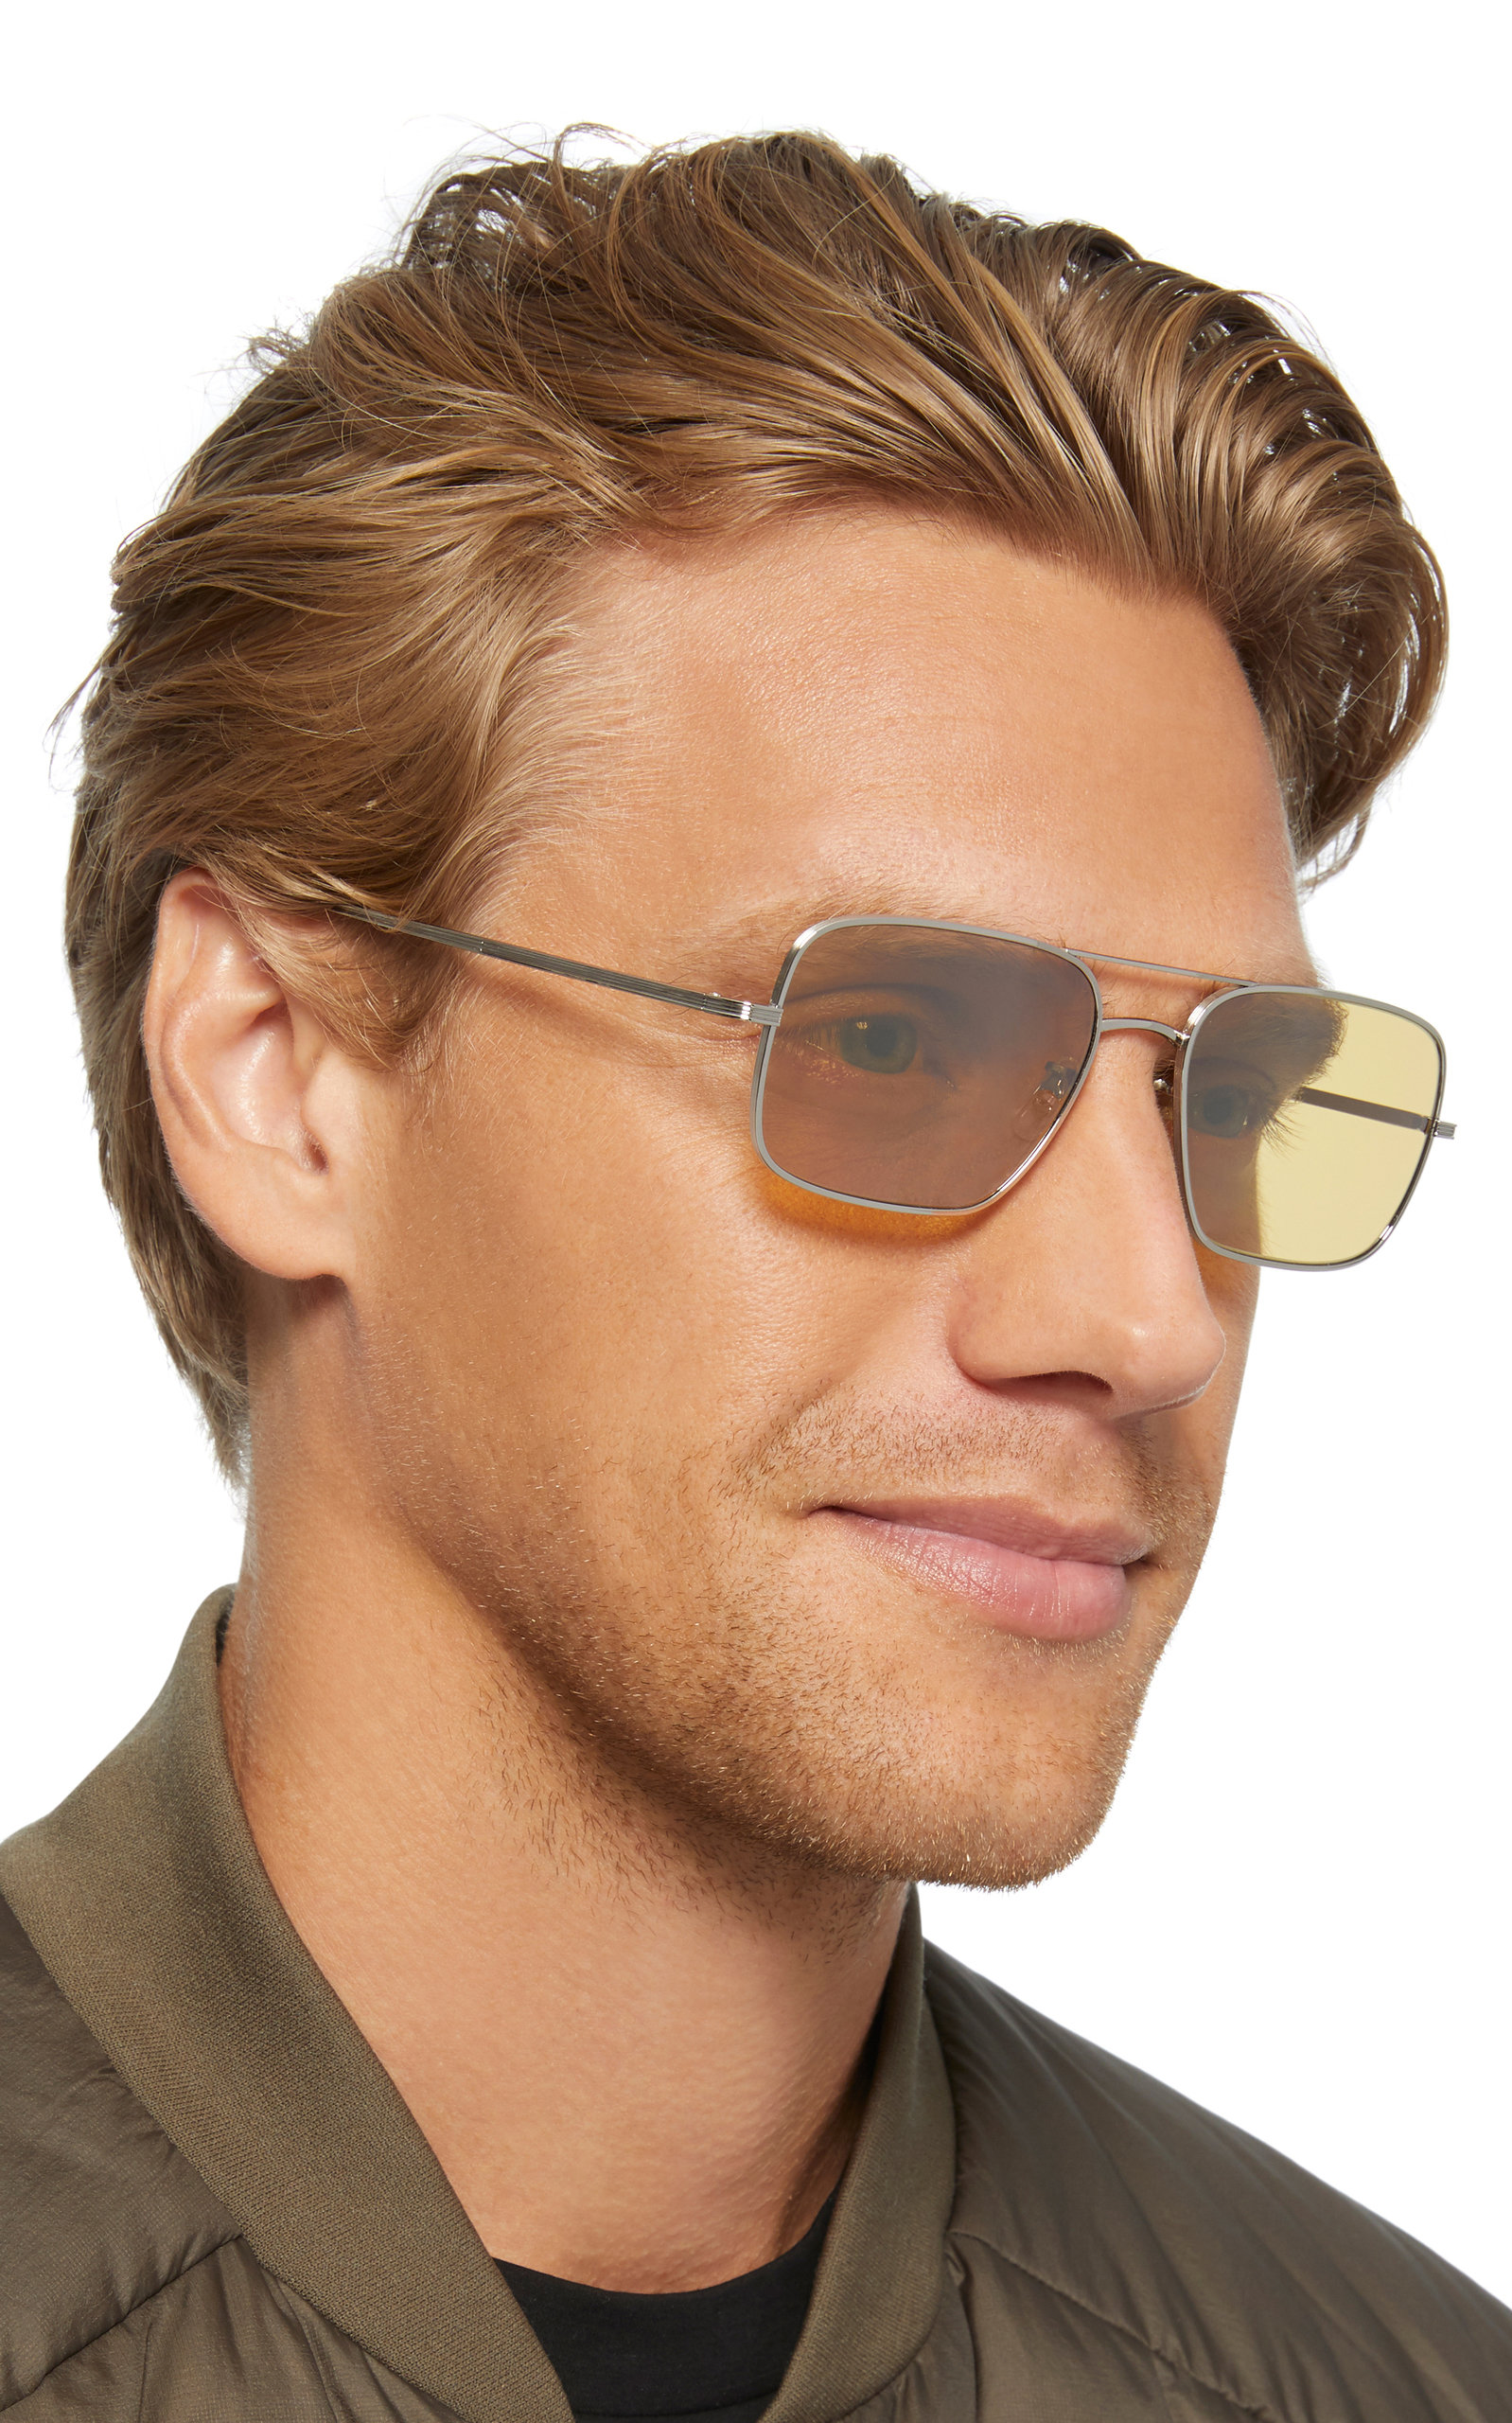 d1e41984c27aa Oliver Peoples THE ROWVictory LA Square Sunglasses. CLOSE. Loading